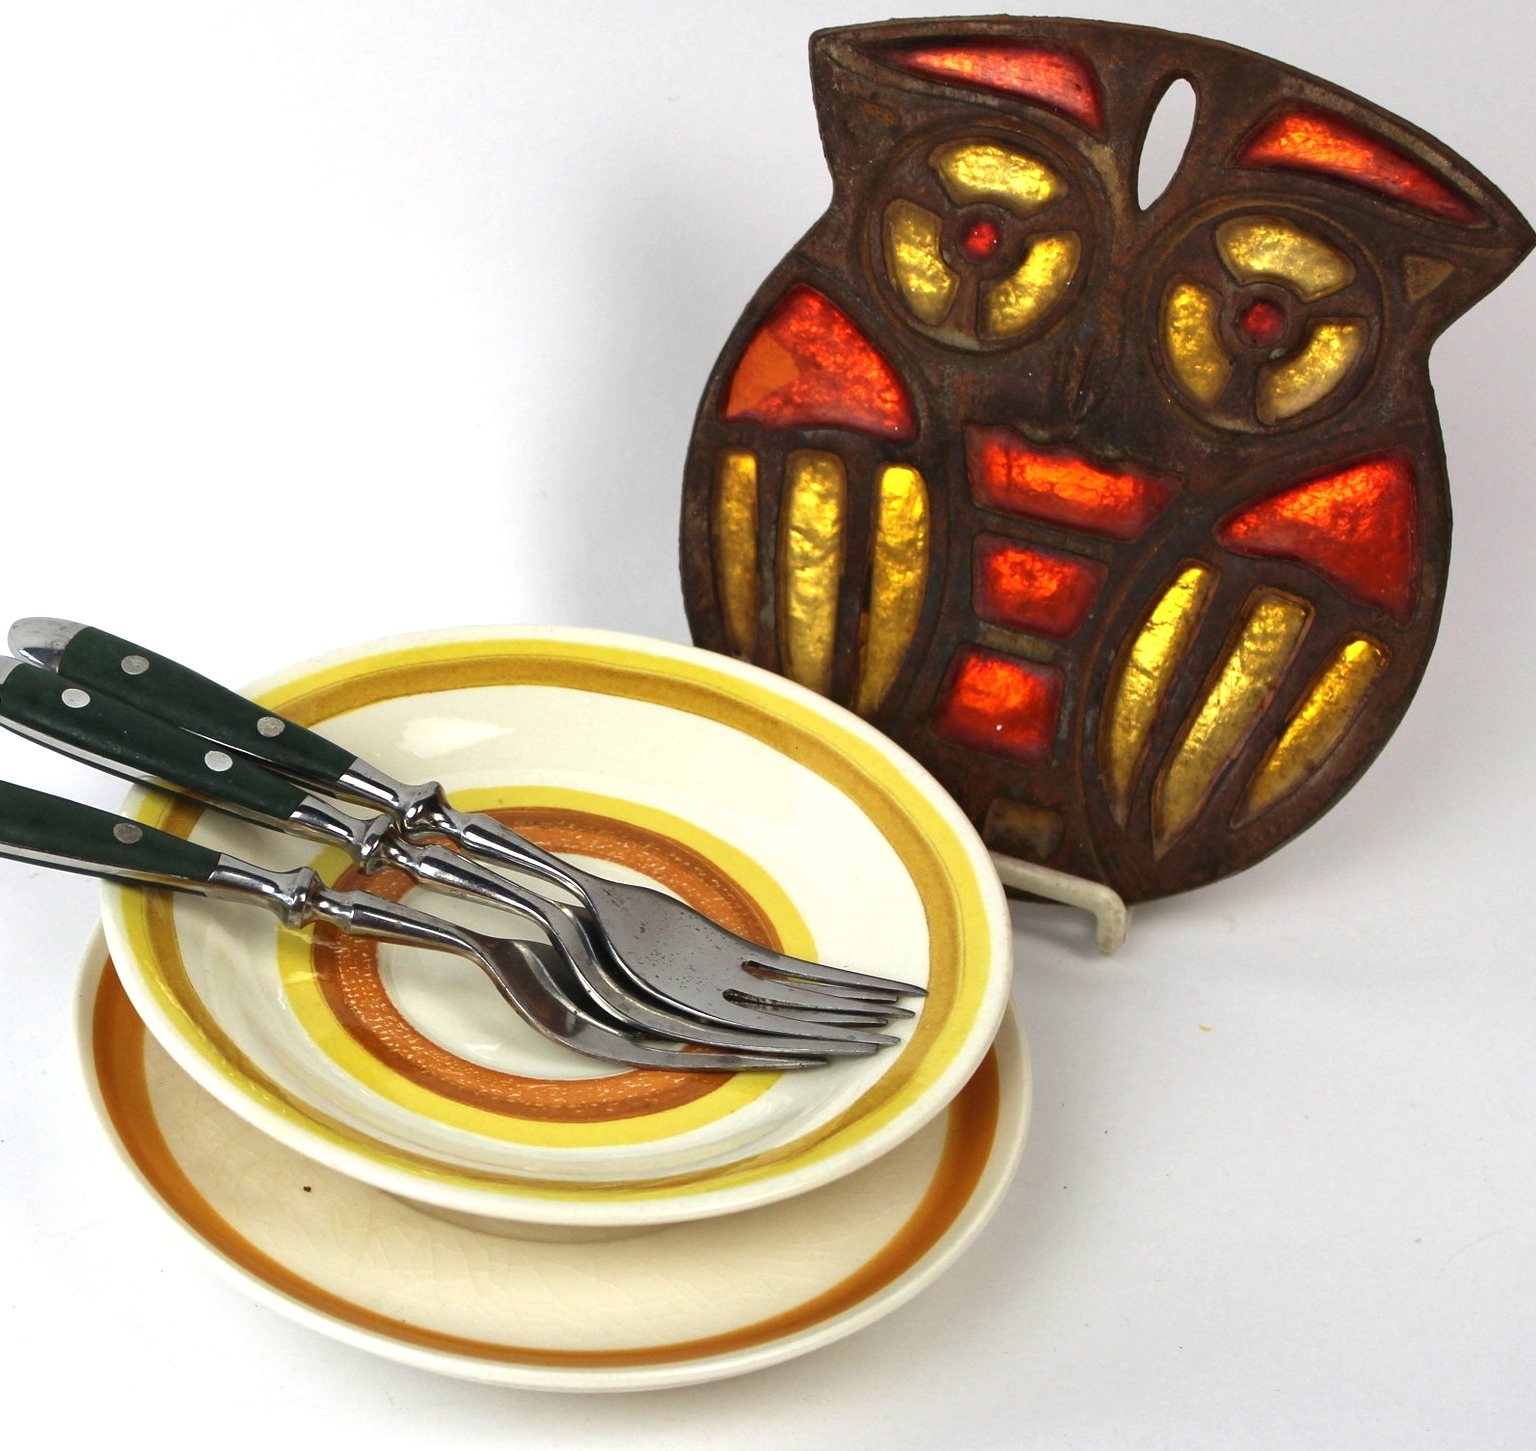 Owl Trivet and Serving Dishes